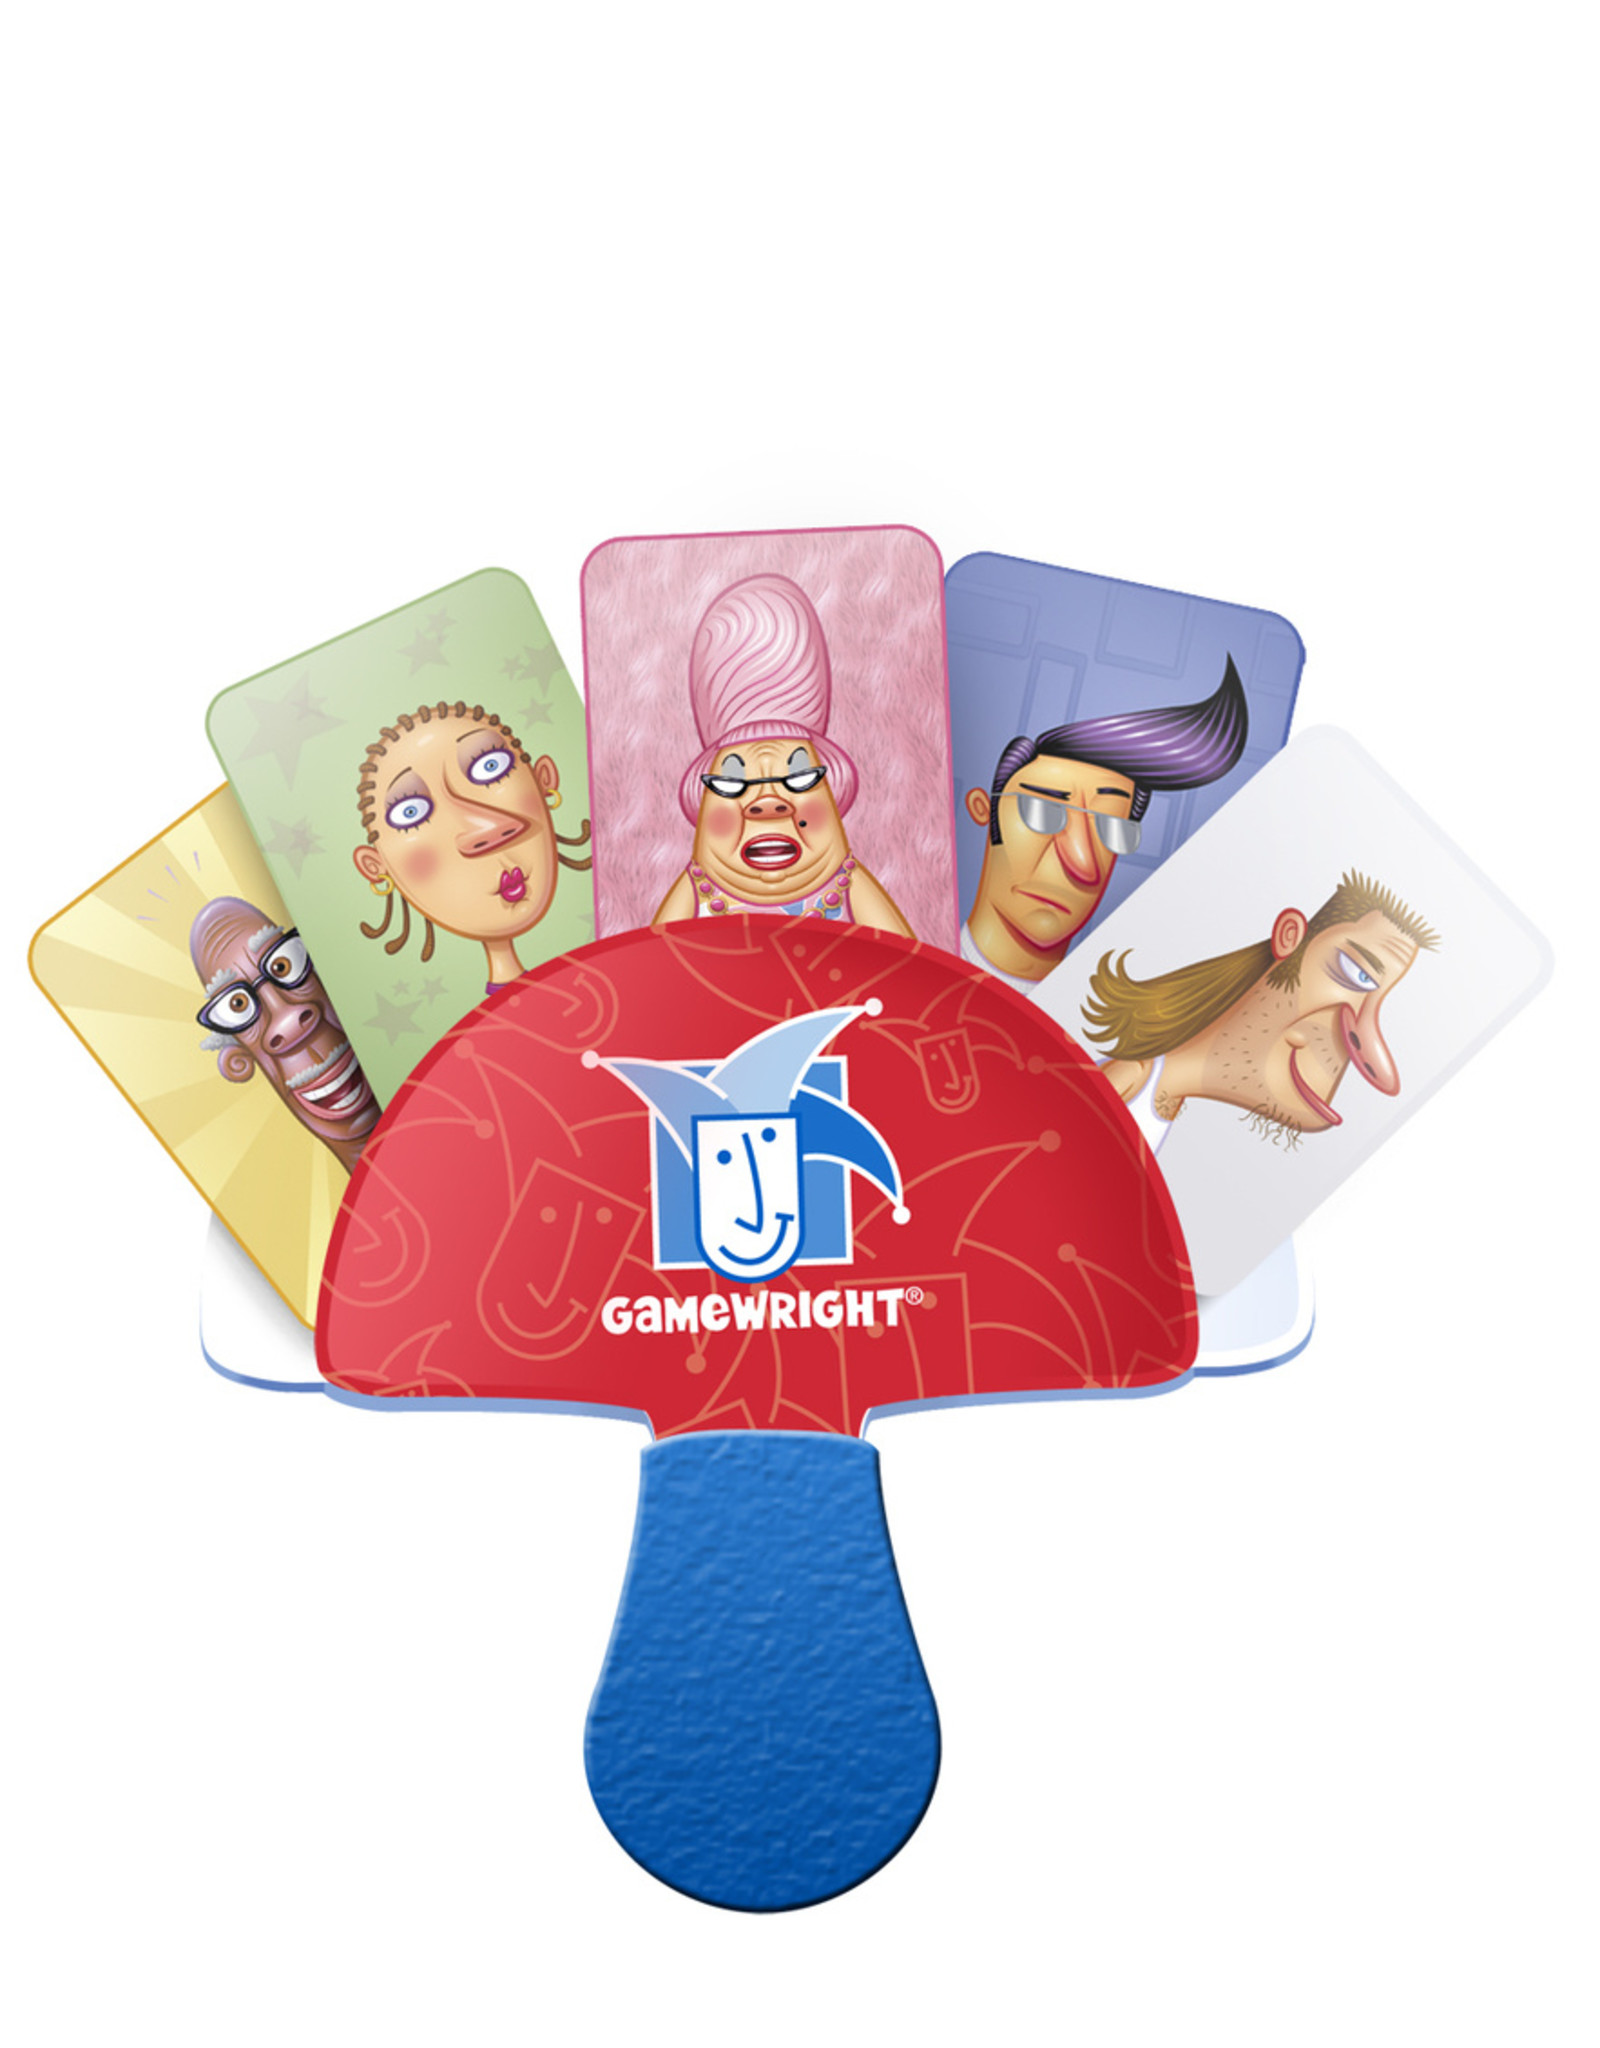 Gamewright Original Little Hands™ Playing Card Holder